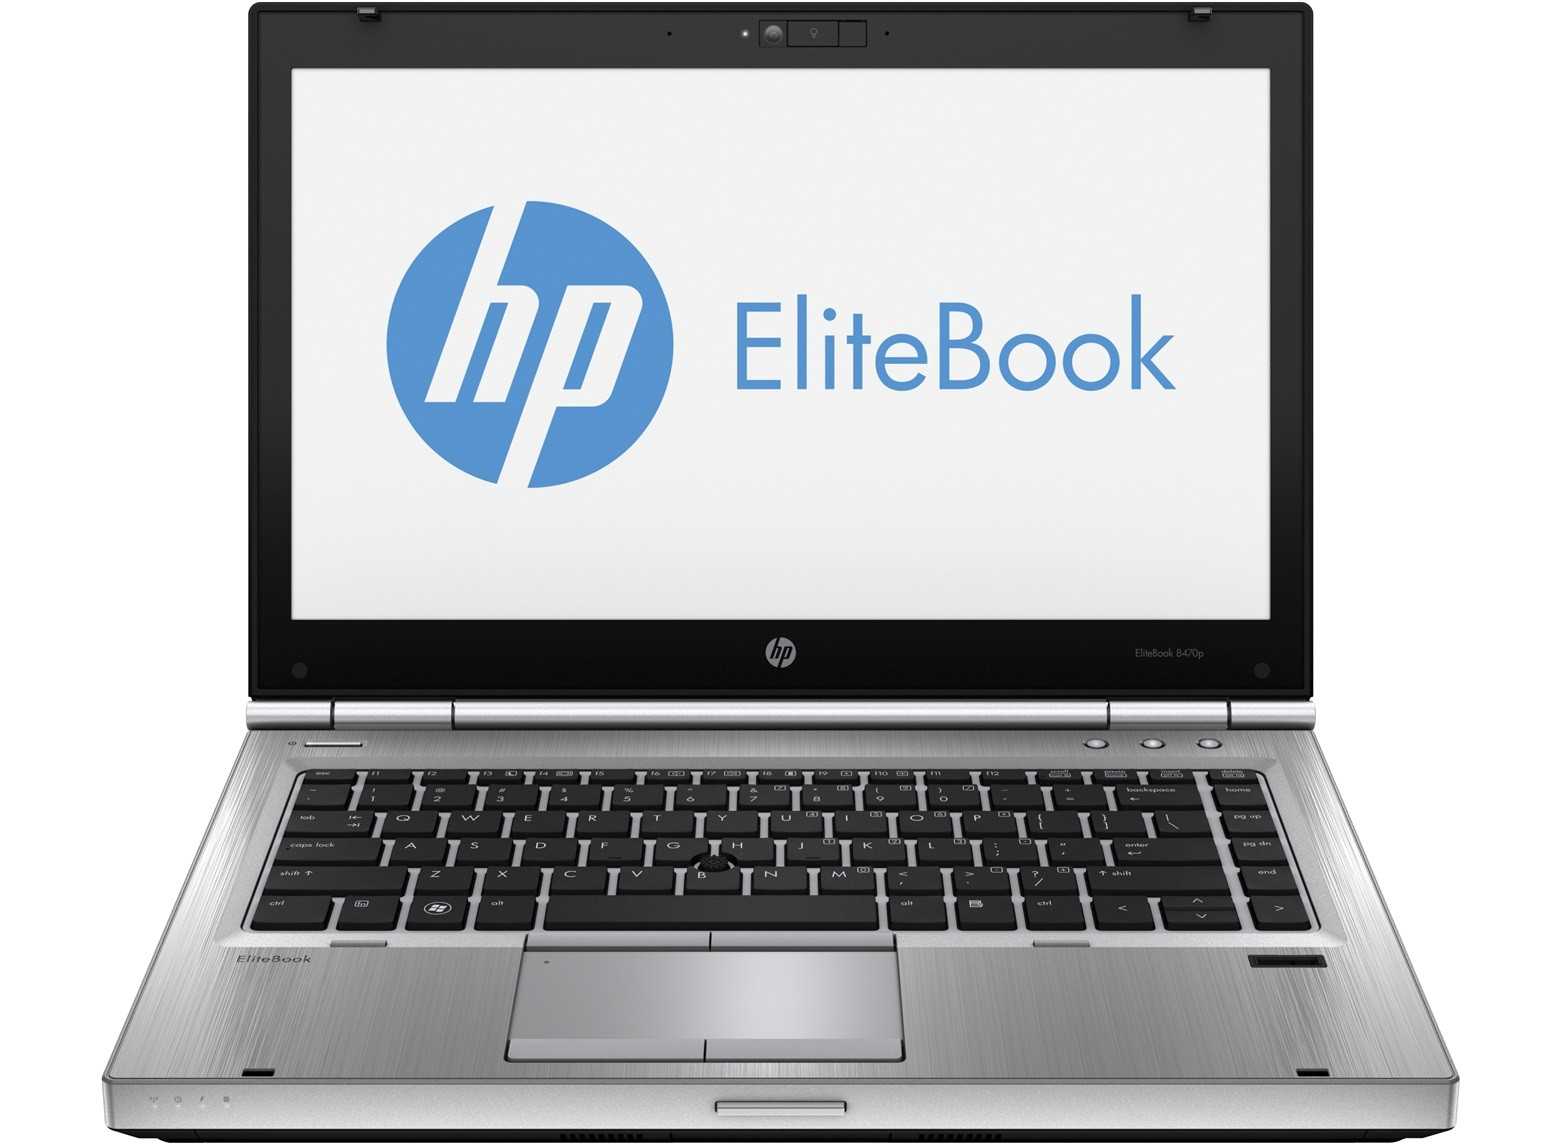 Hp elitebook 8470p intel i5-3320m 3th gen 8gb 256gb ssd hdmi